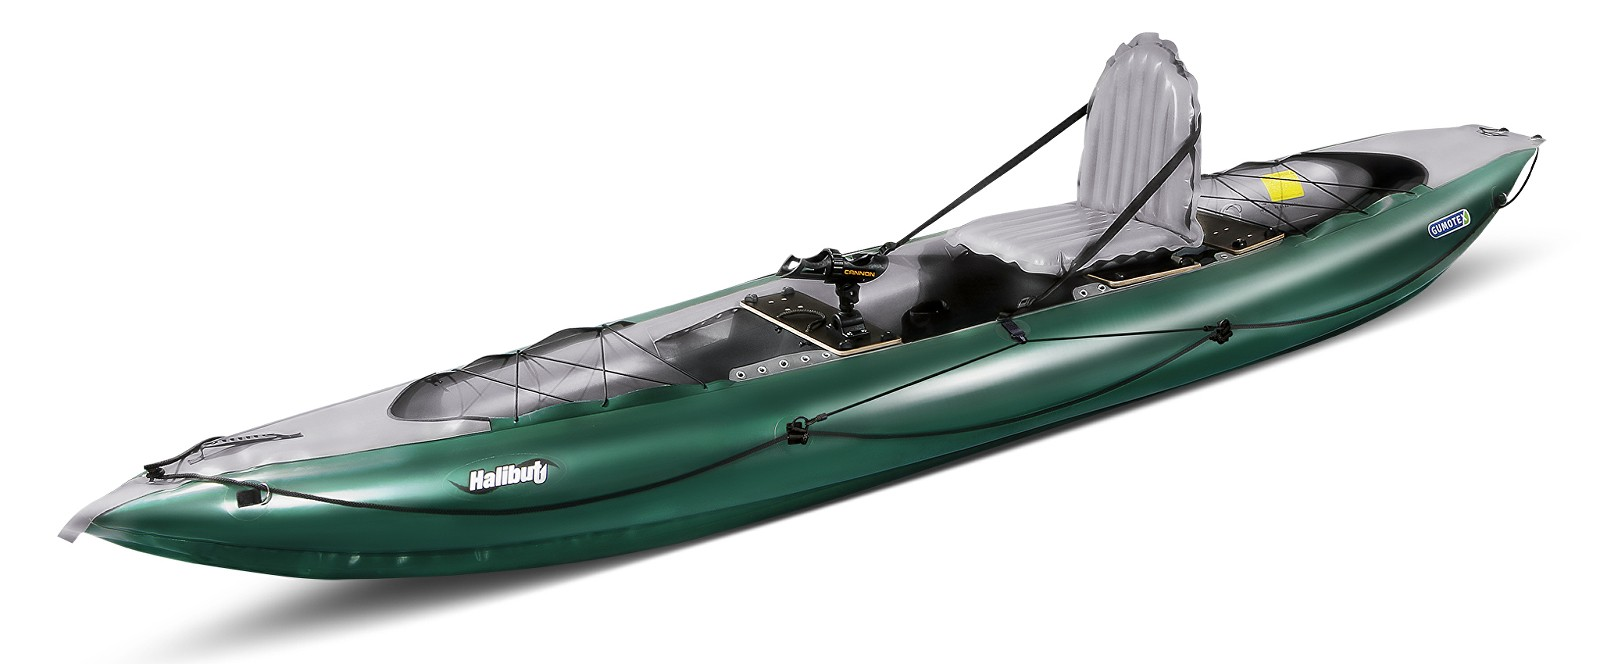 kayak gonflable de peche gumotex halibut